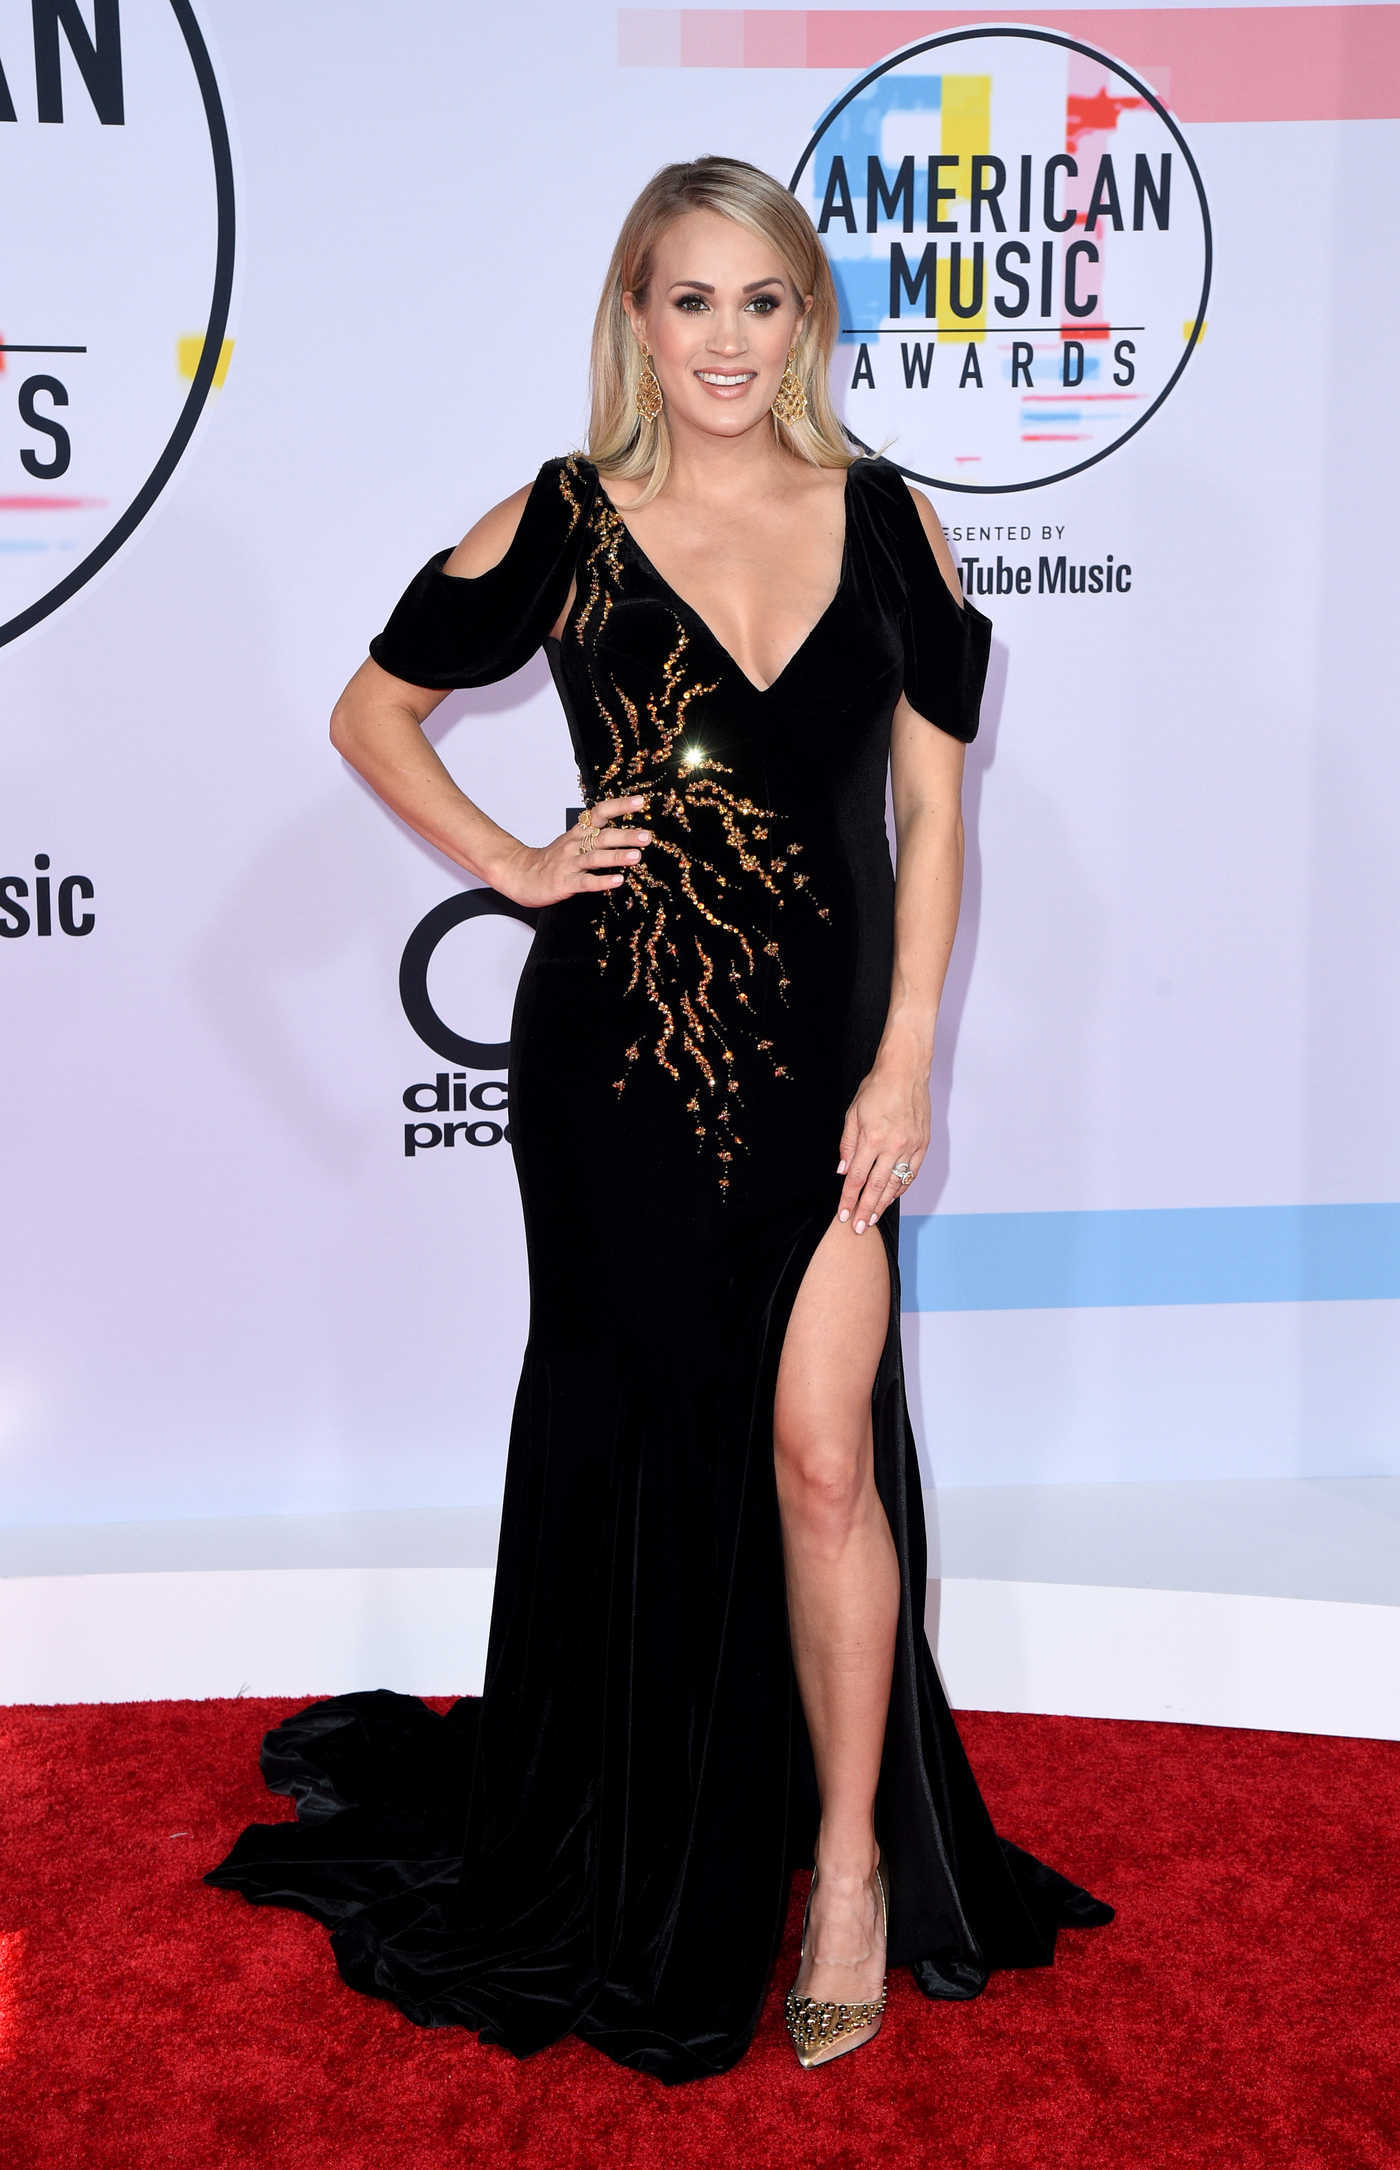 Carrie Underwood at 2018 American Music Awards at Microsoft Theater in LA 10/09/2018